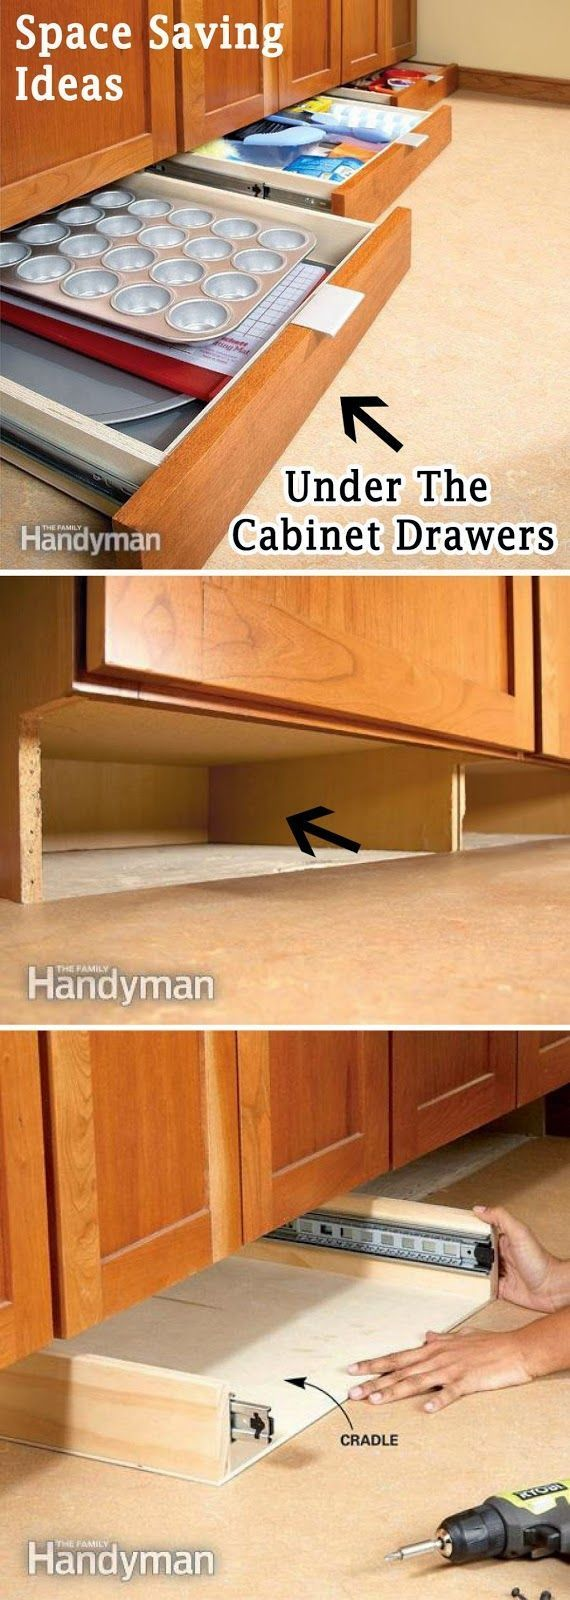 Peachy 17 Best Ideas About Space Saving On Pinterest Small Space Largest Home Design Picture Inspirations Pitcheantrous